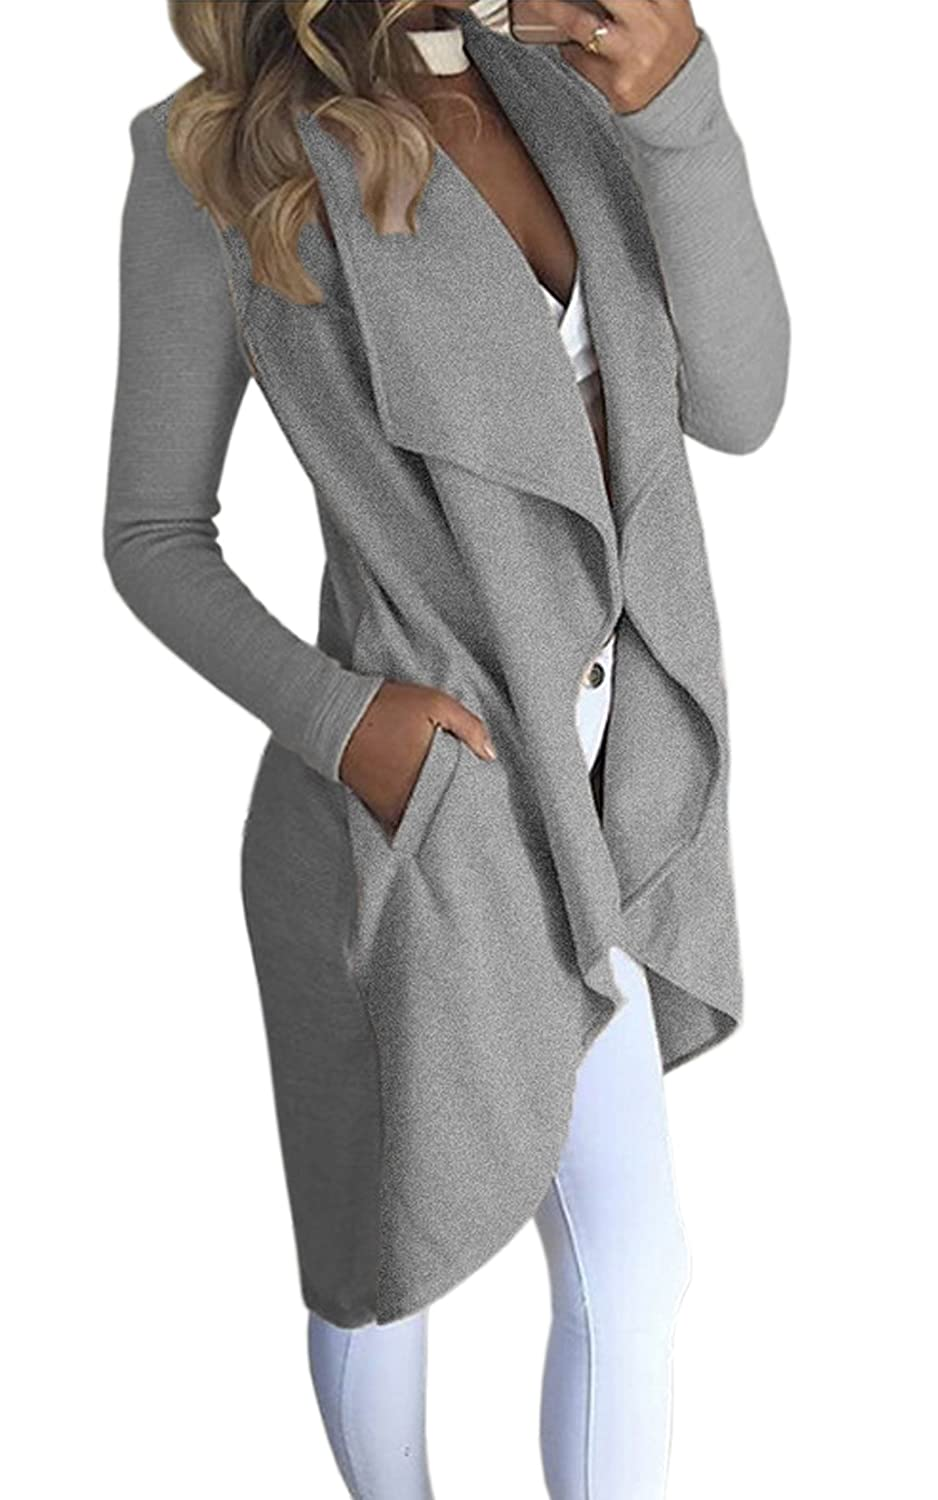 Ecowish Womens Winter Lapel Irregular Long Sleeves Jacket Open Front Cardigans Trench Coat EH534